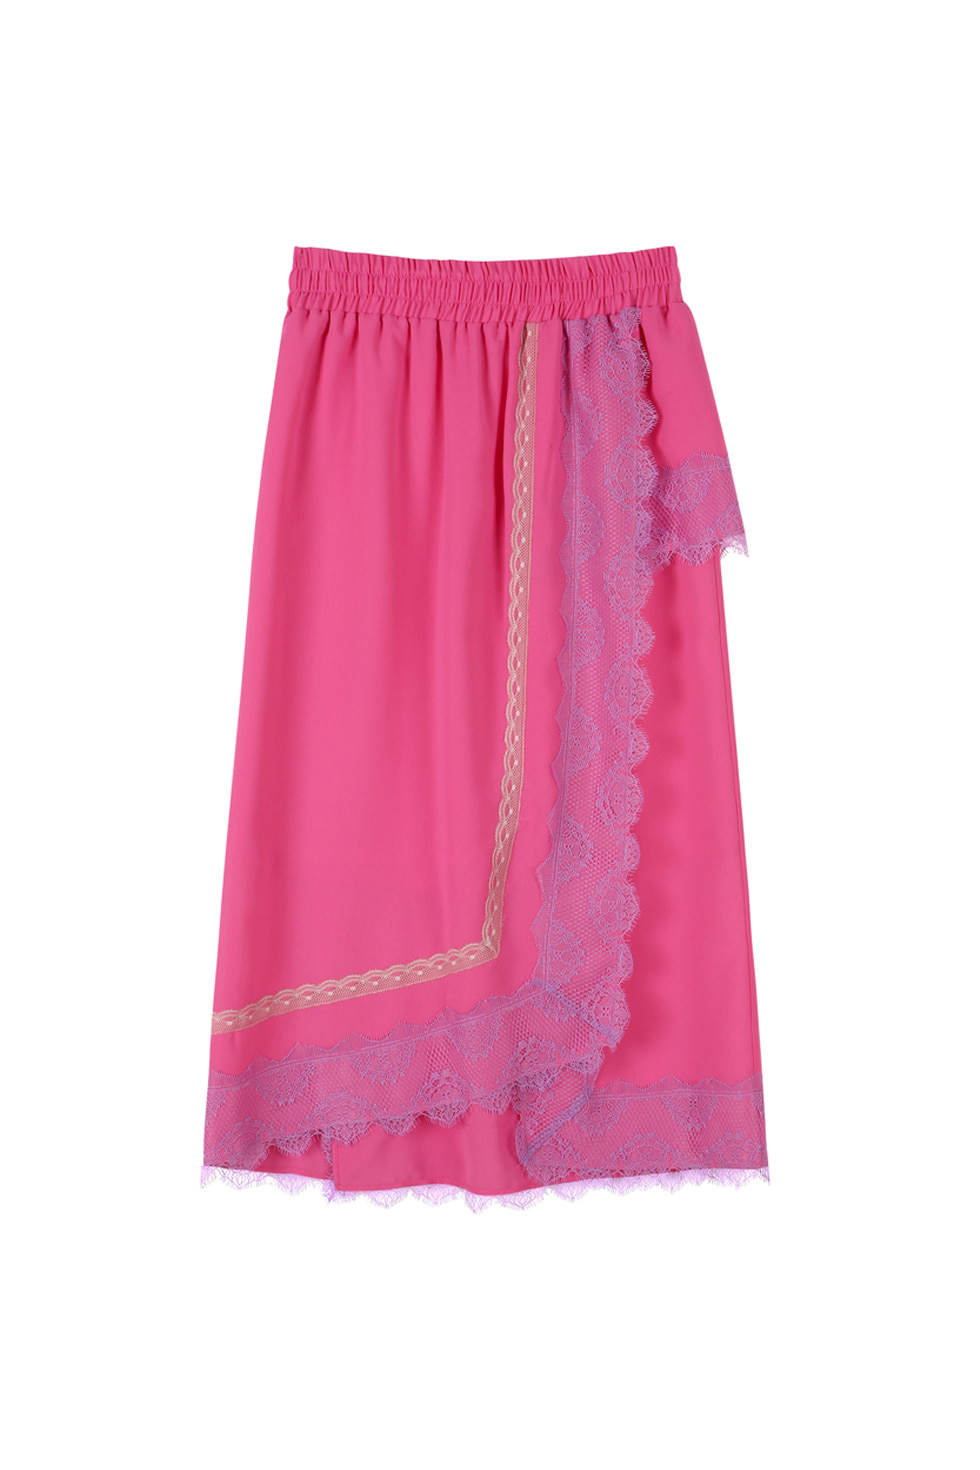 LACE SKIRT - PINK